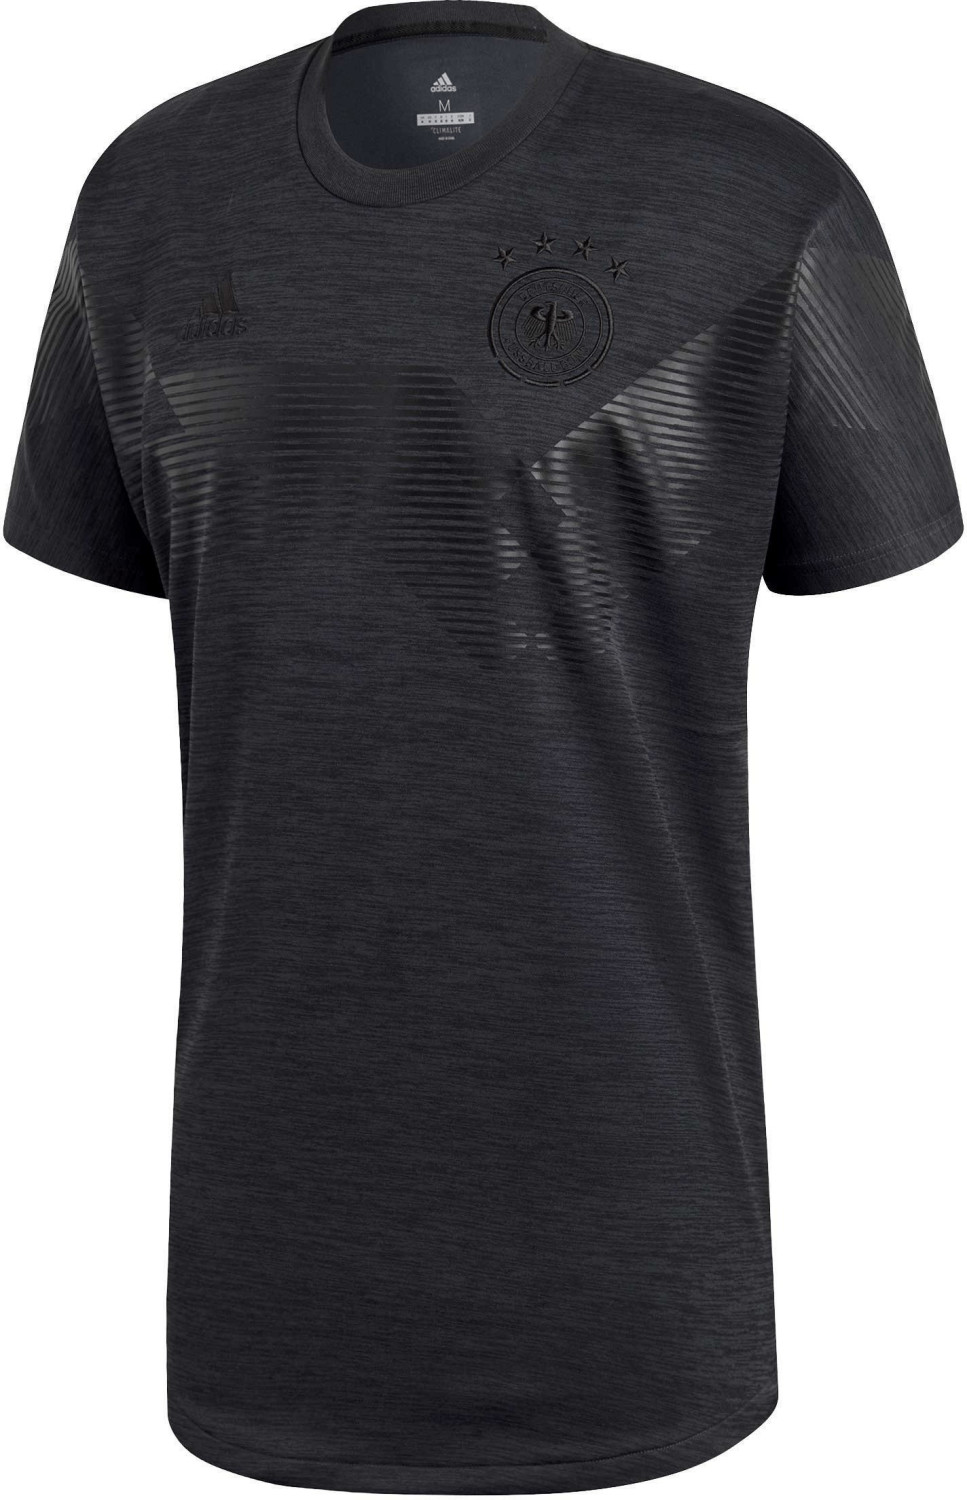 Adidas DFB Seasonal Special T-Shirt black/dark ...